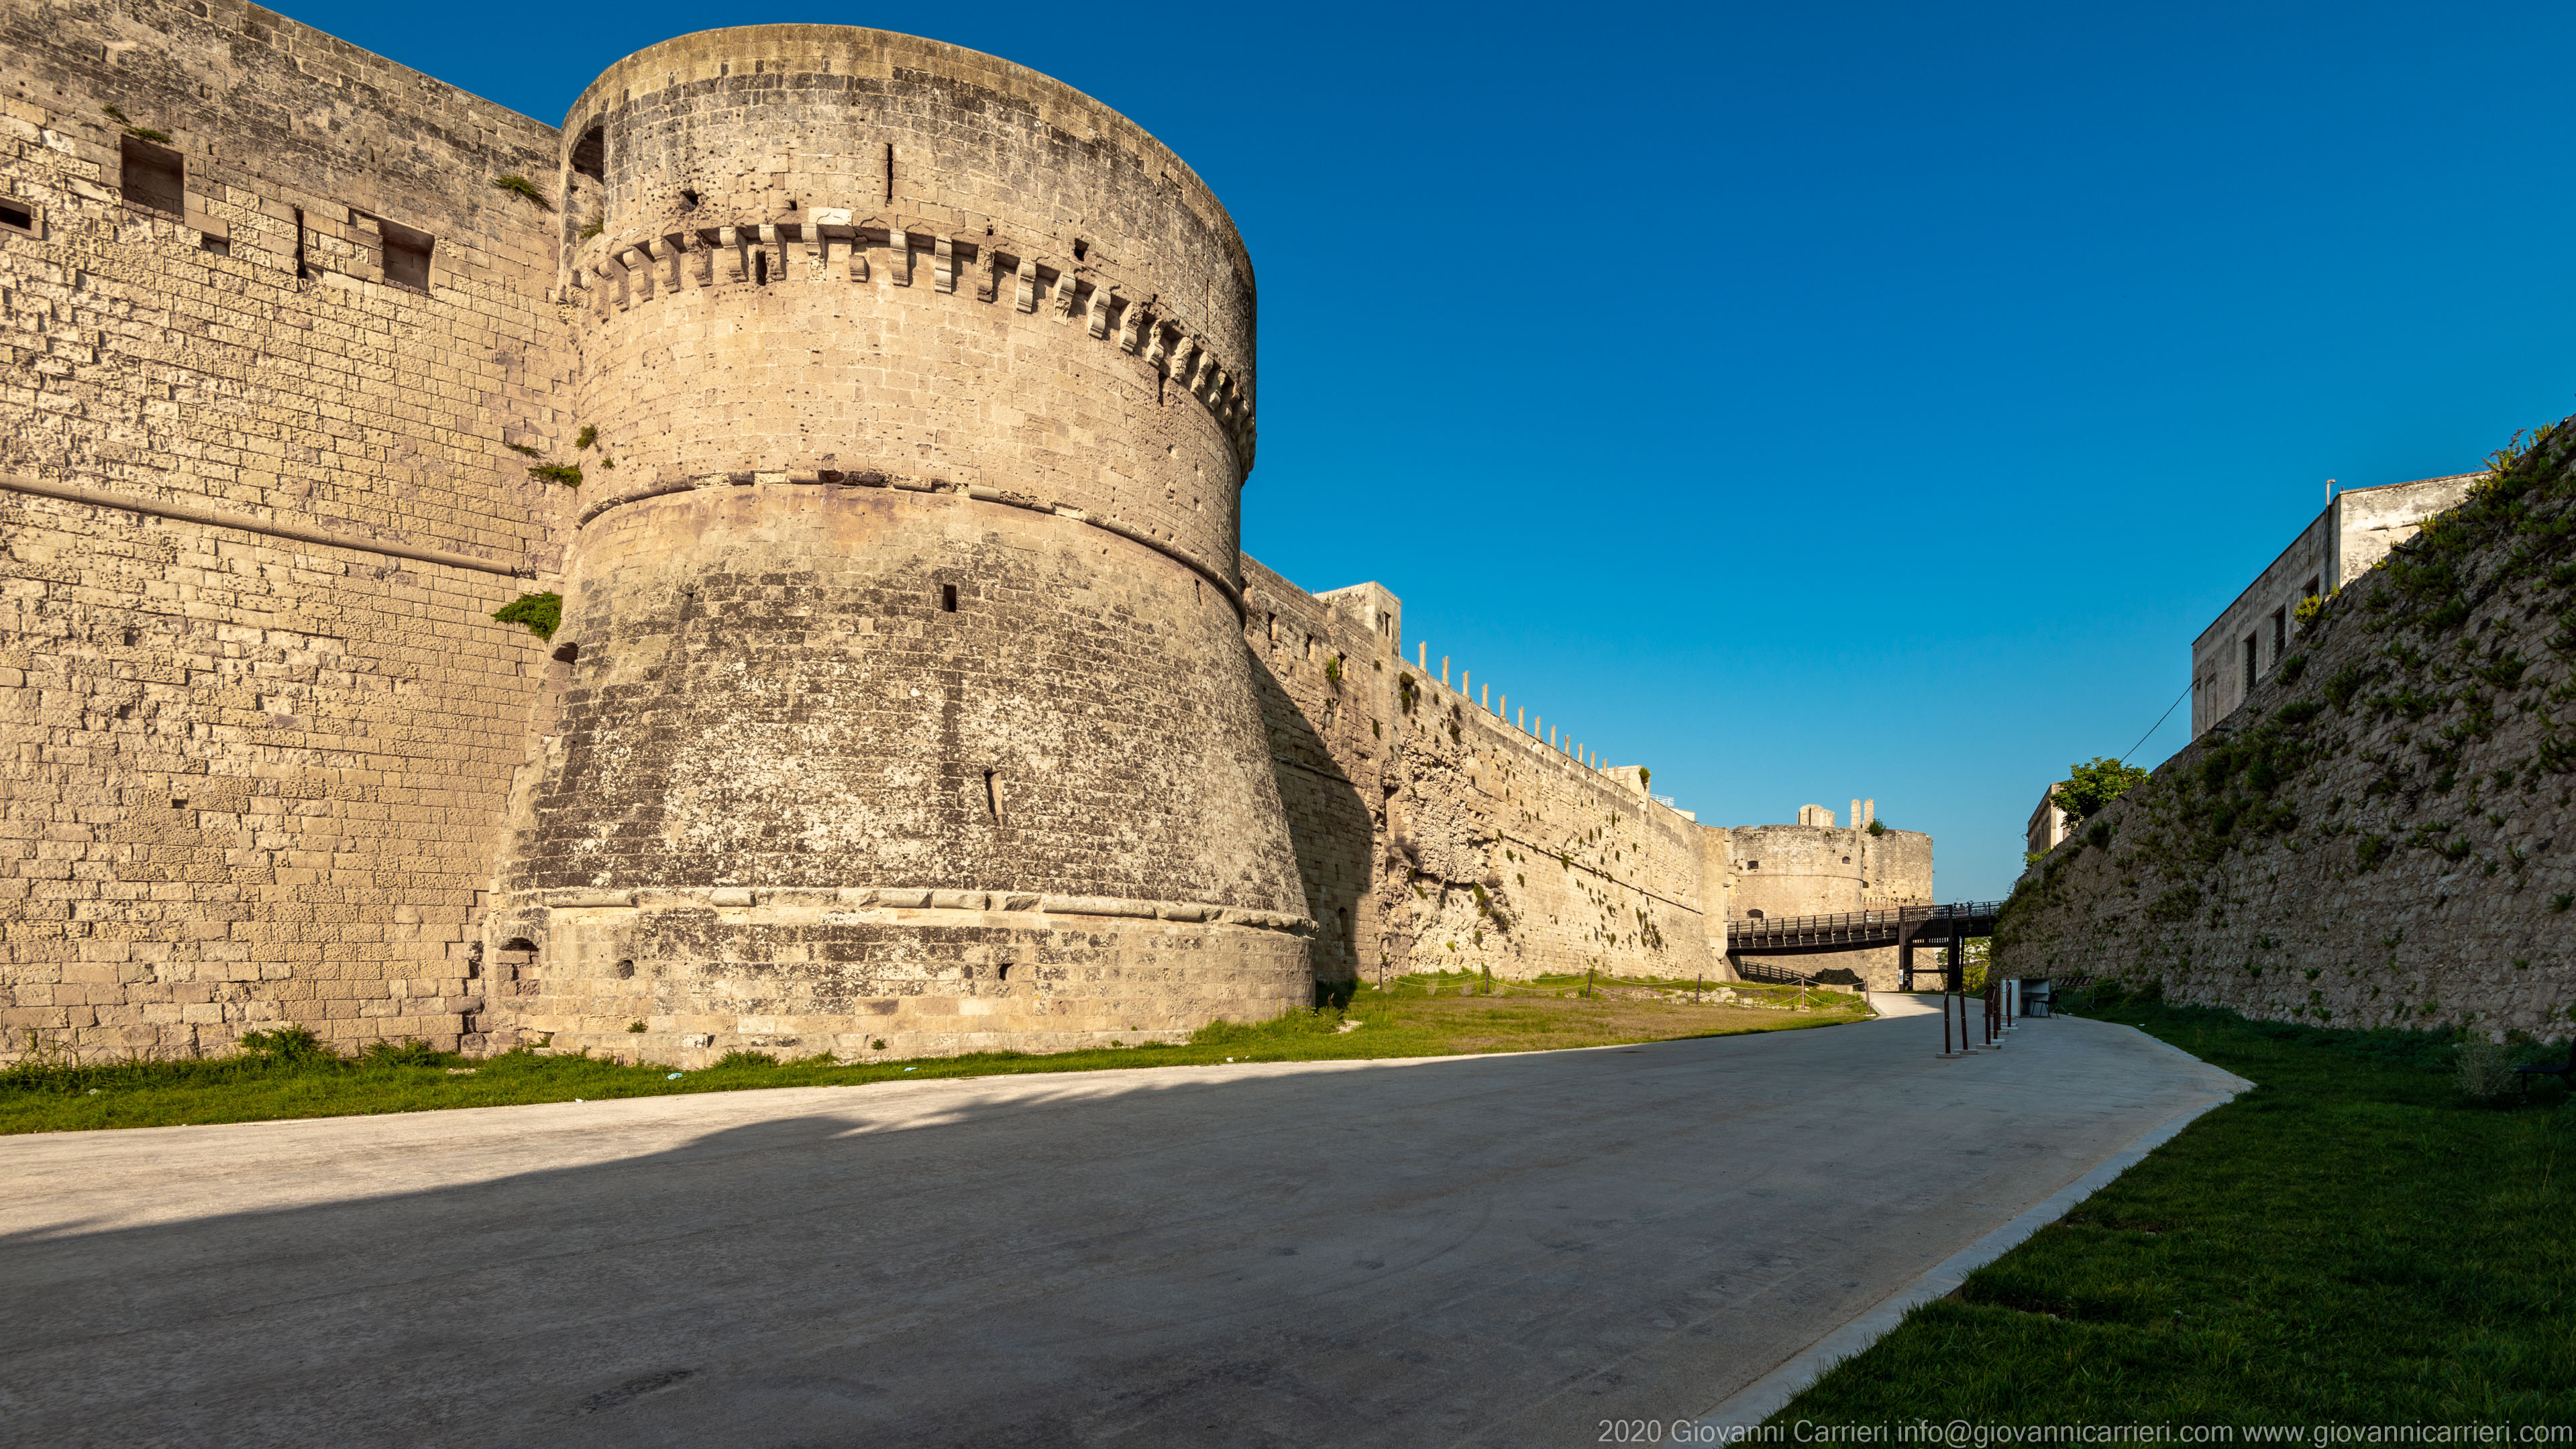 The moat of the Castle of Otranto